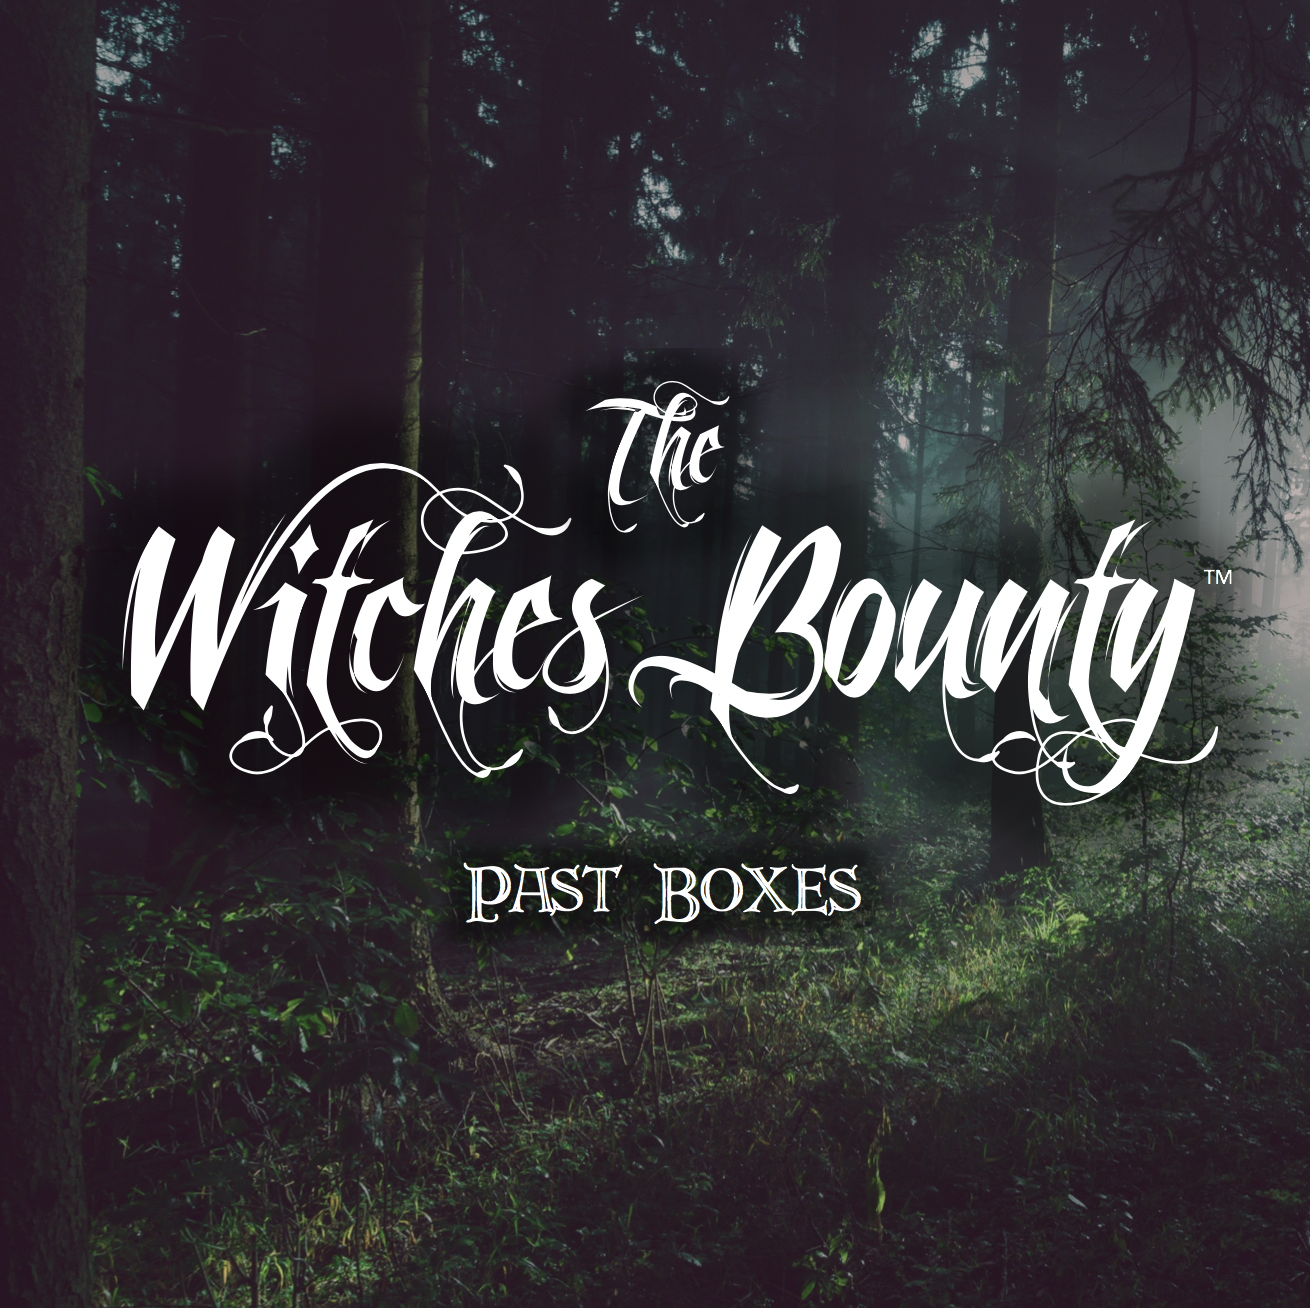 The Witches Bounty™ - January 2019 Collection